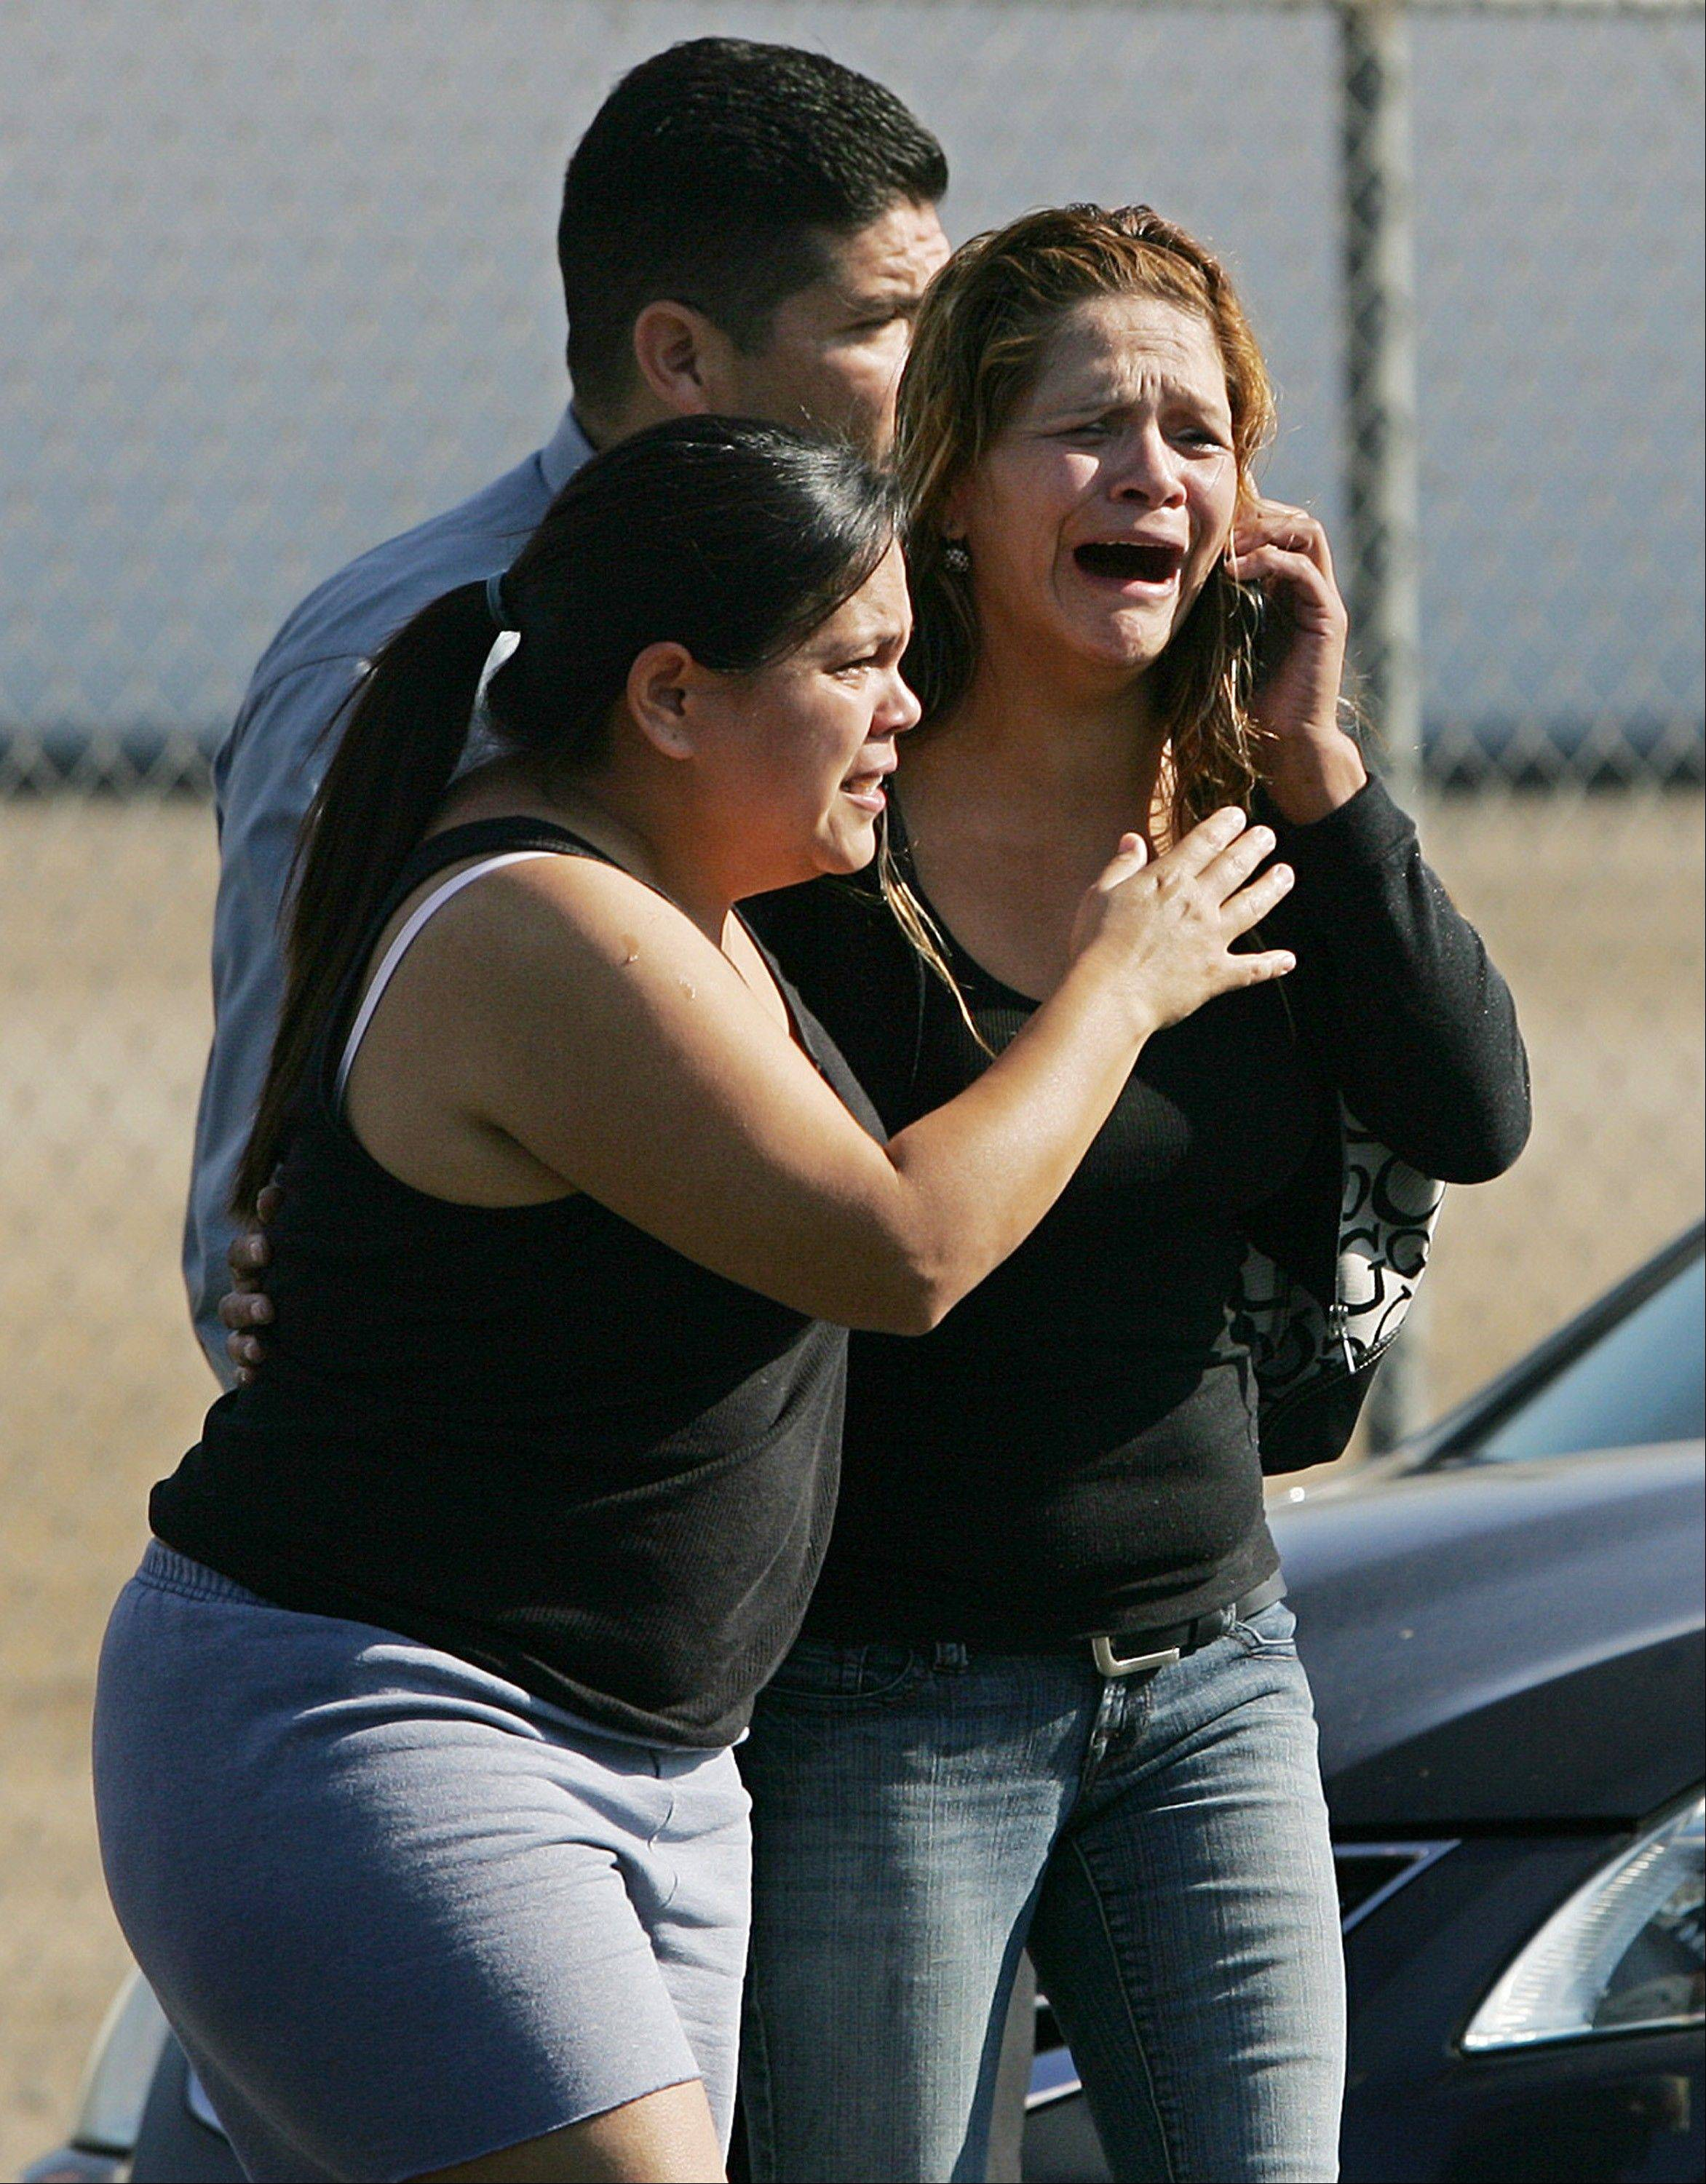 An unidentified woman cries as she's rushed into a car after learning of a workplace shooting Tuesday, Nov. 6, 2012, in Fresno, Calif. A parolee who worked at a California chicken processing plant opened fire at the business on Tuesday, killing one person and wounding three others, before shooting himself, police said.